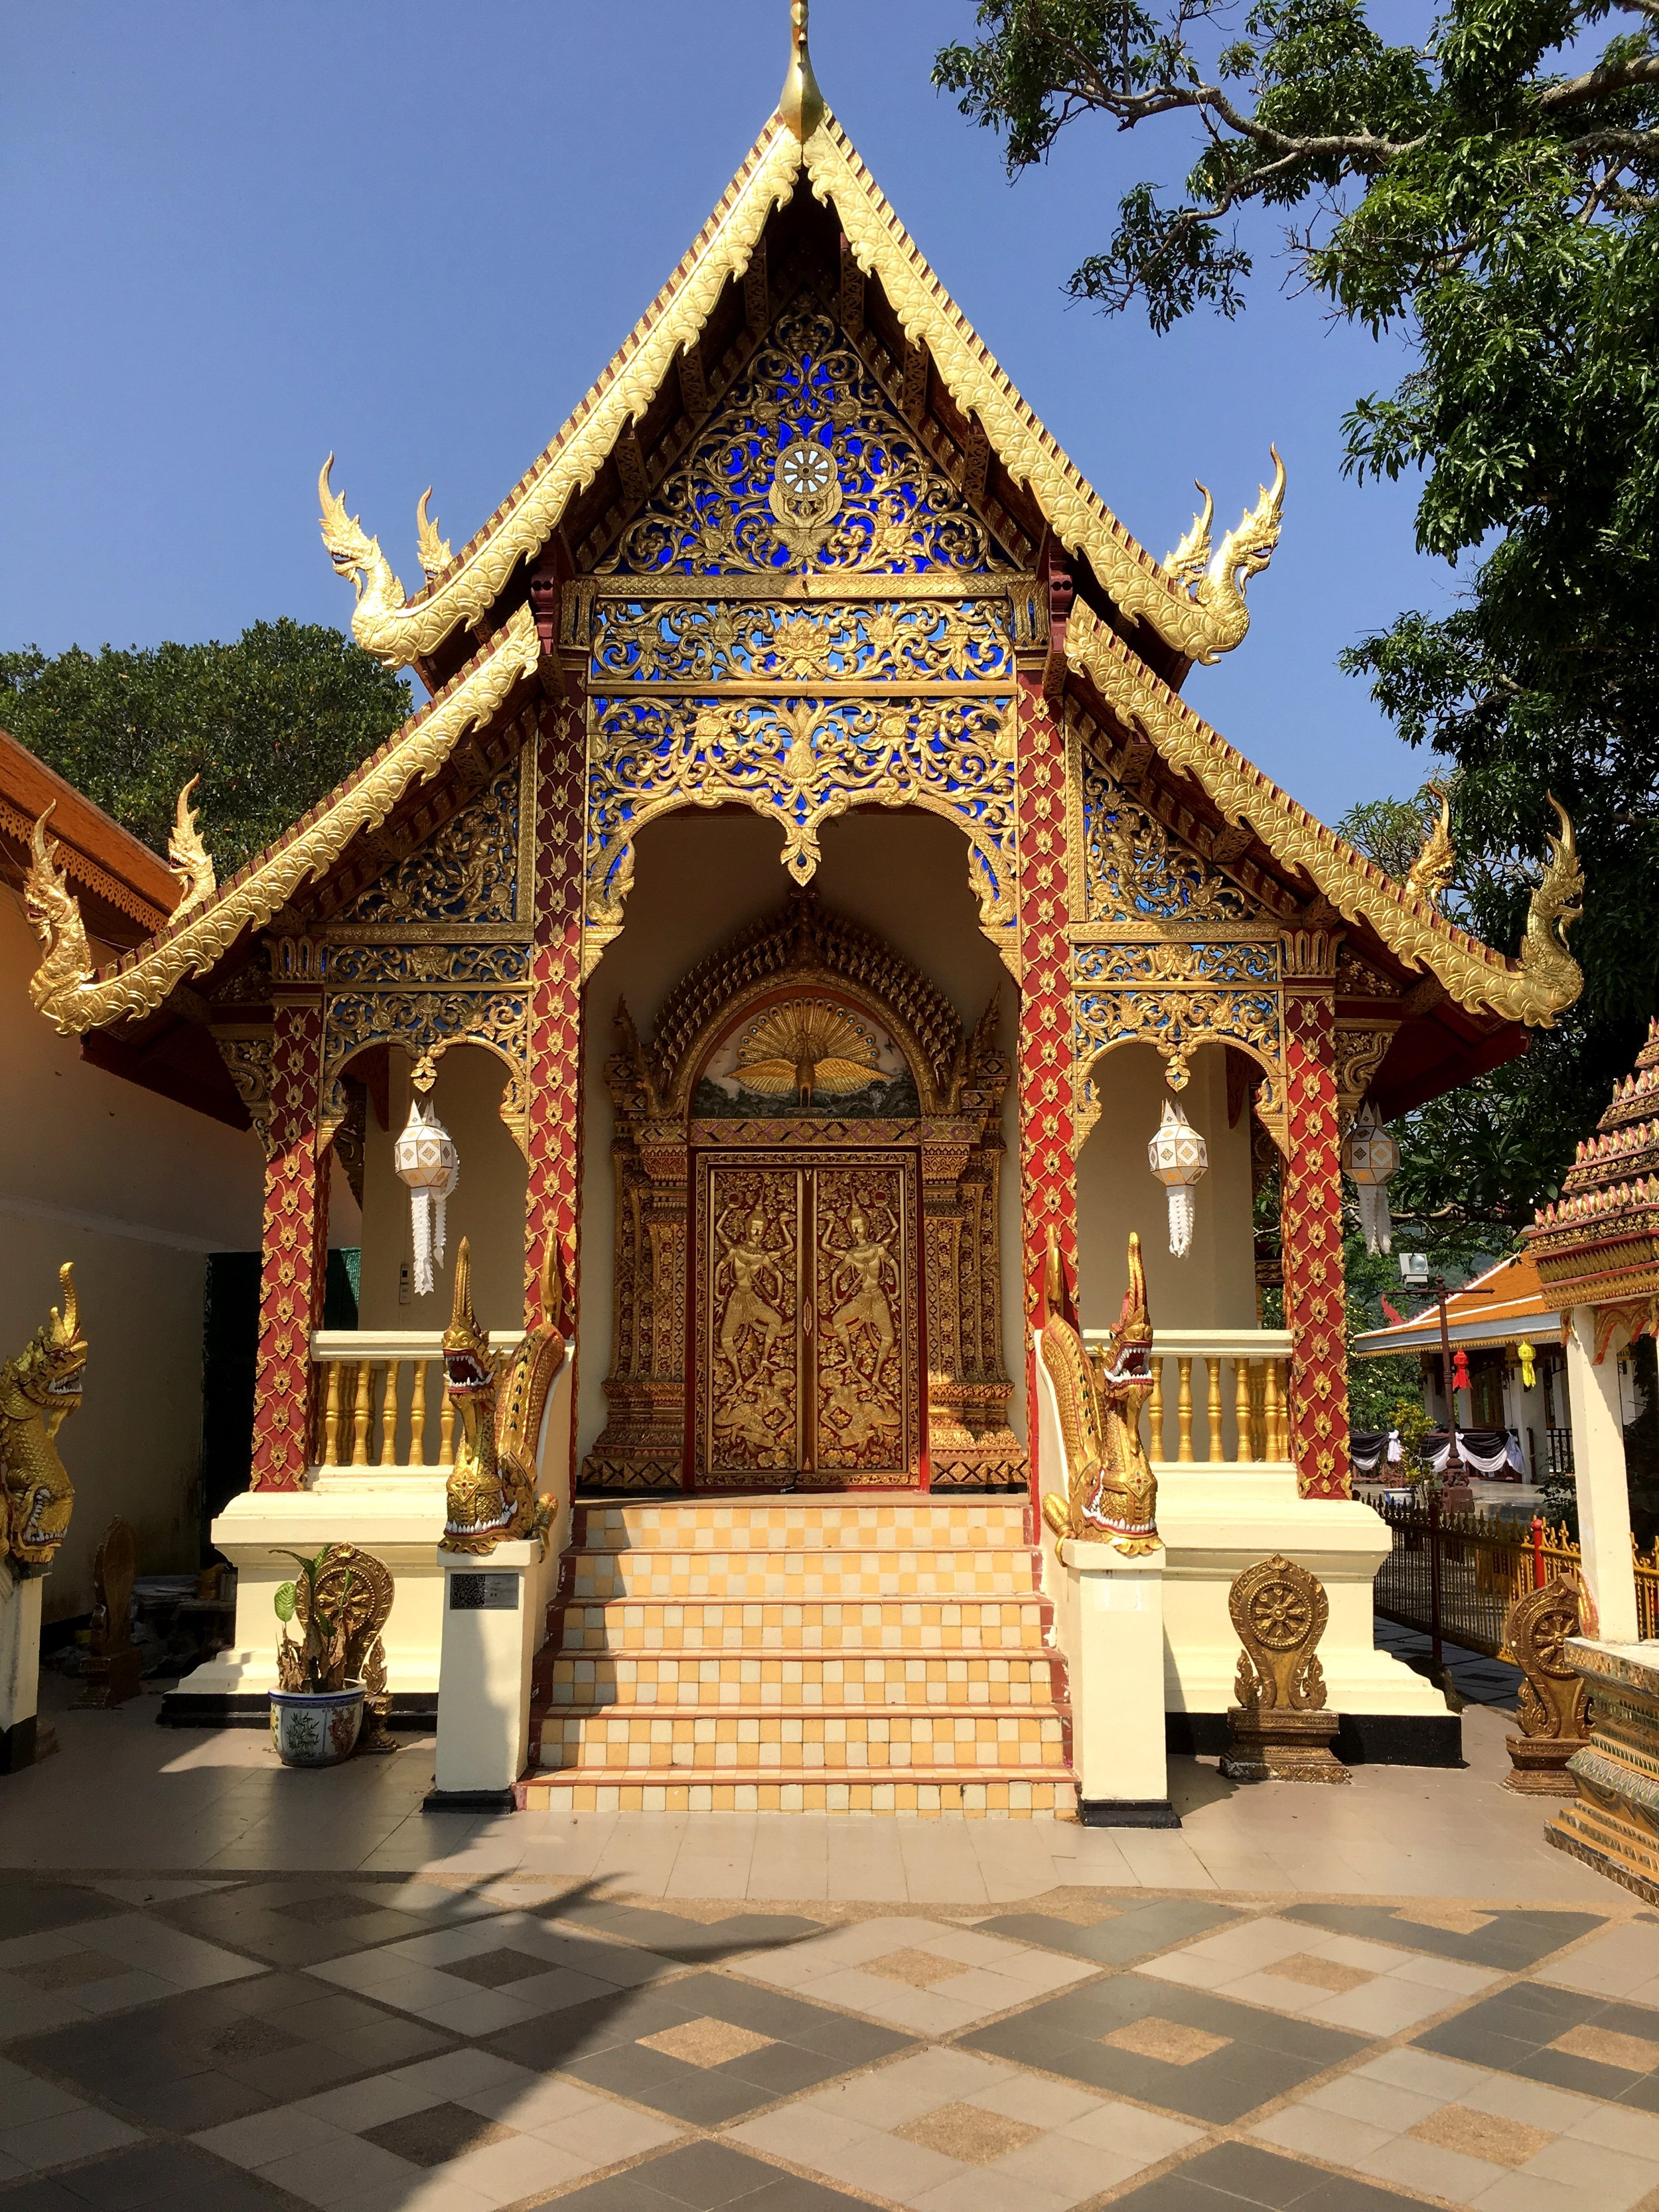 As with any Thai temple, there's lots to explore on the Wat Phra That Doi Suthep grounds